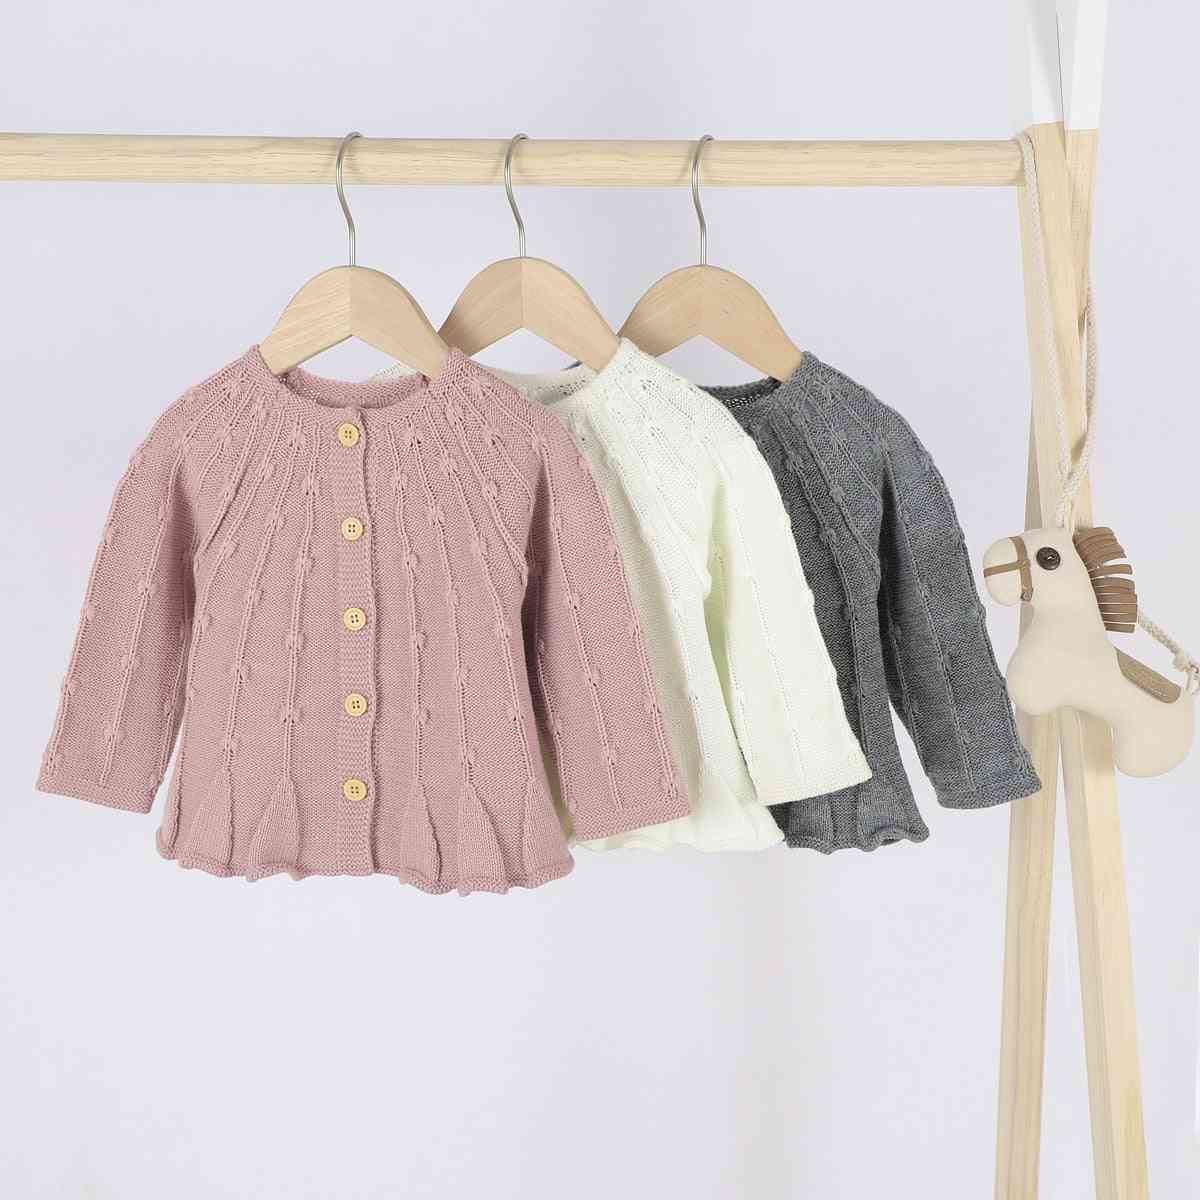 Baby Girl Knitted Cardigan Sweaters, Winter Outwears Clothing